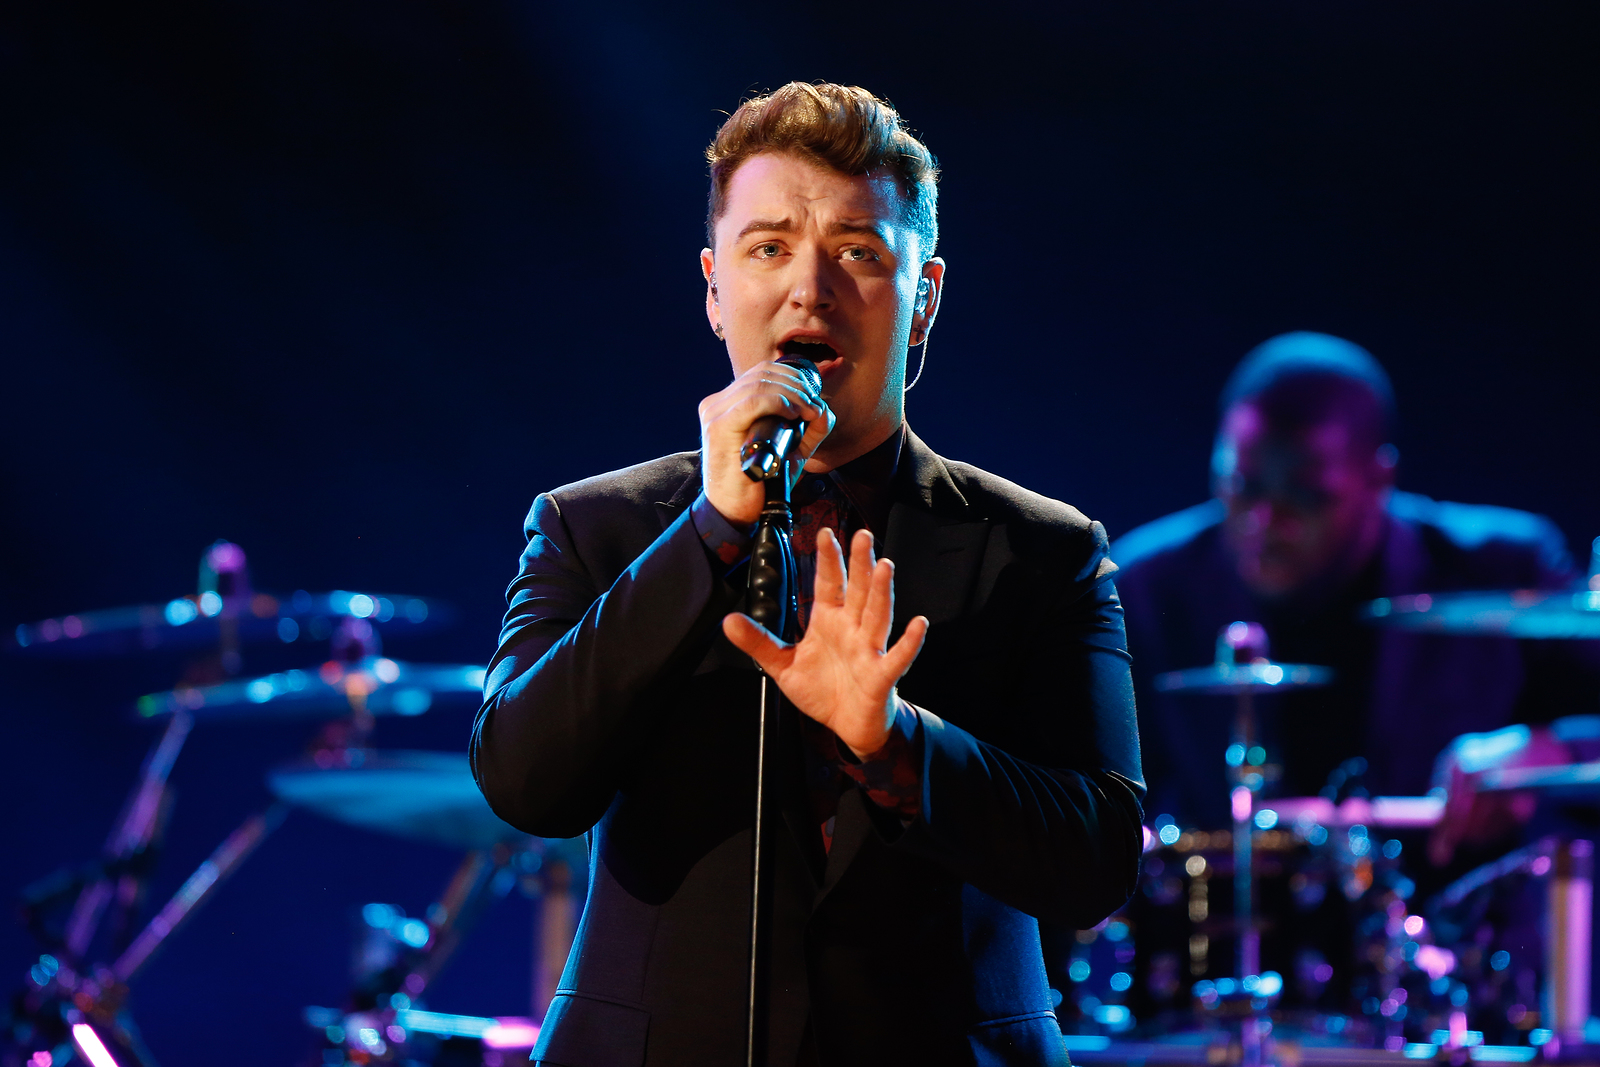 Singer Sam Smith performing on stage.